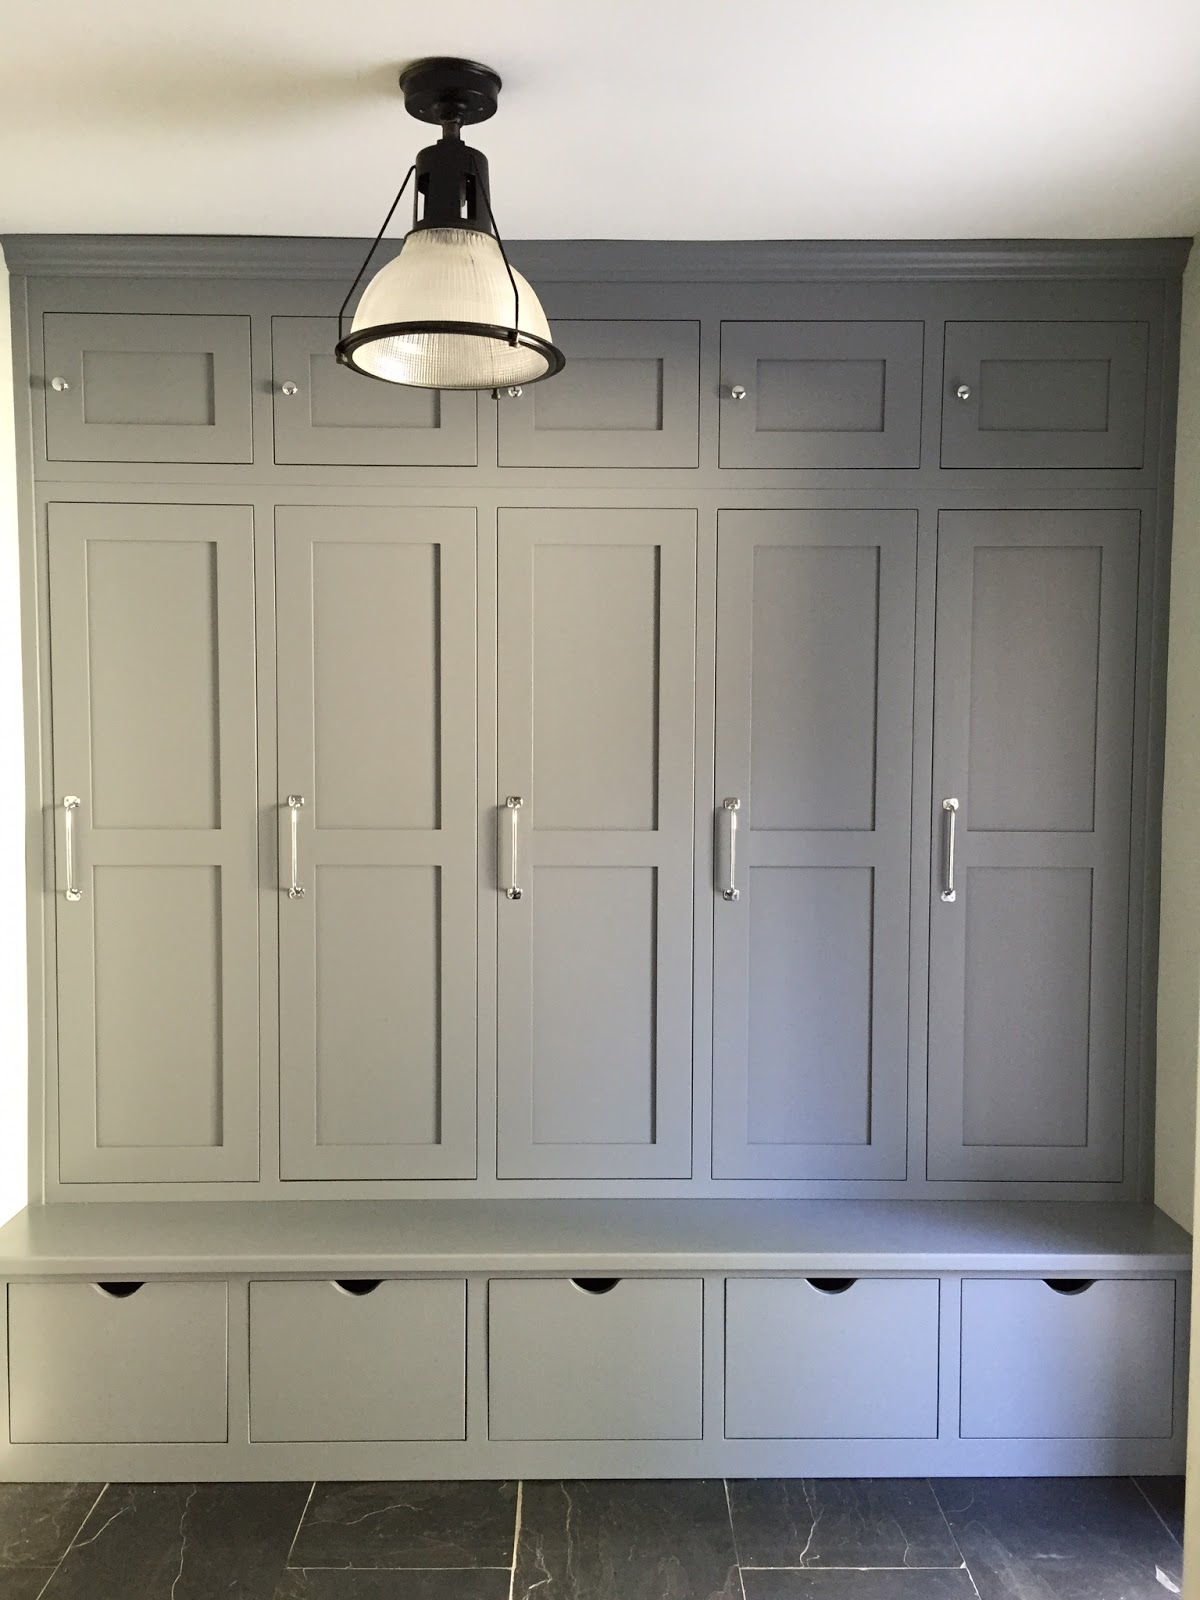 Foyer Built In Cabinets : Showing off melinda from thrifty decor chick